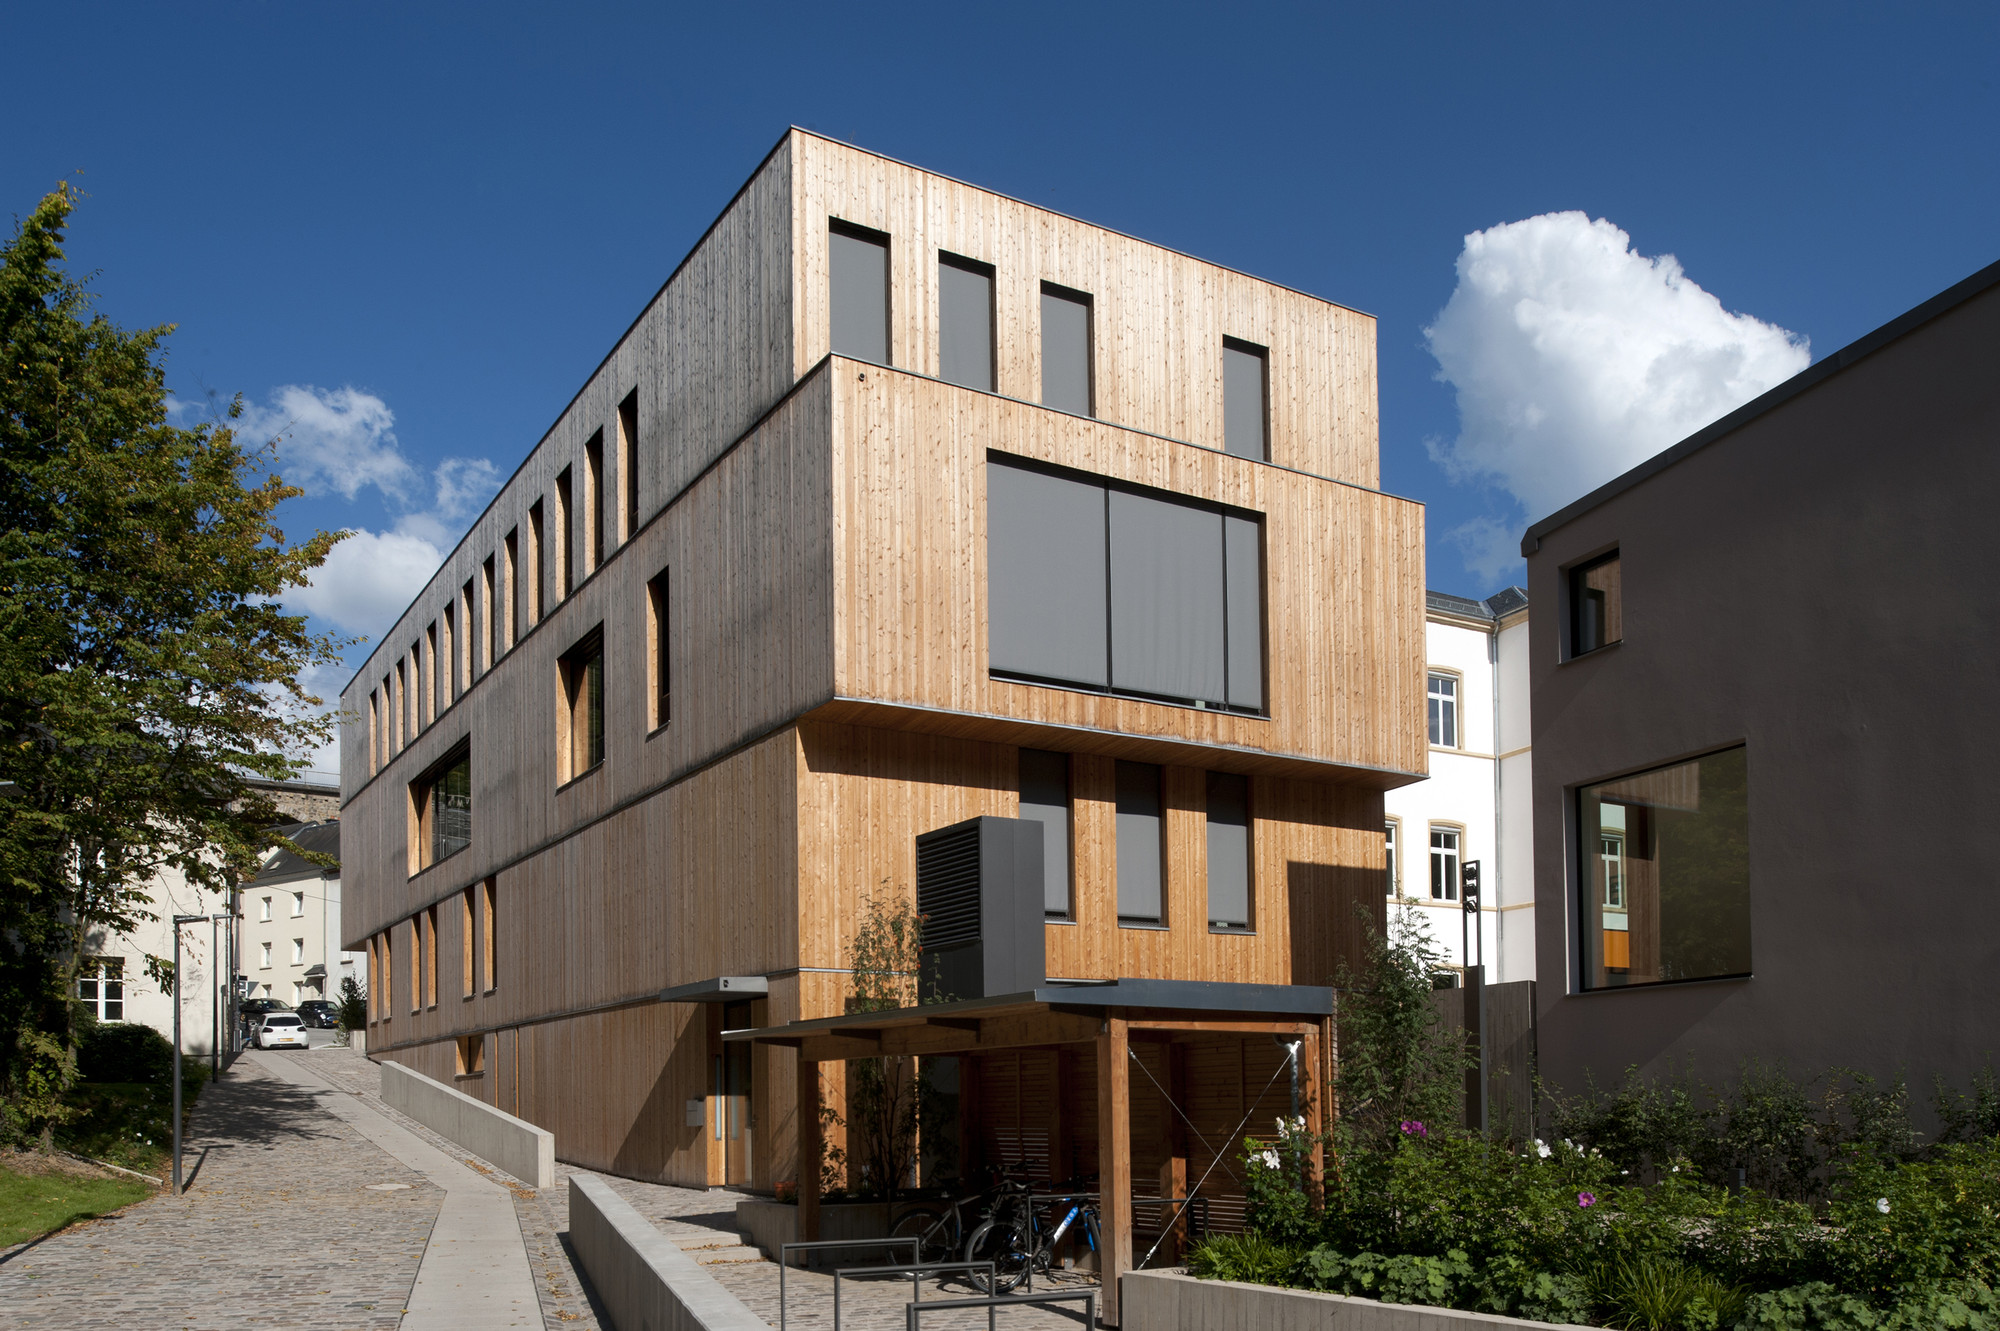 Administrative Building For The Oeko-Center / STEINMETZDEMEYER, © Catherine Thiry